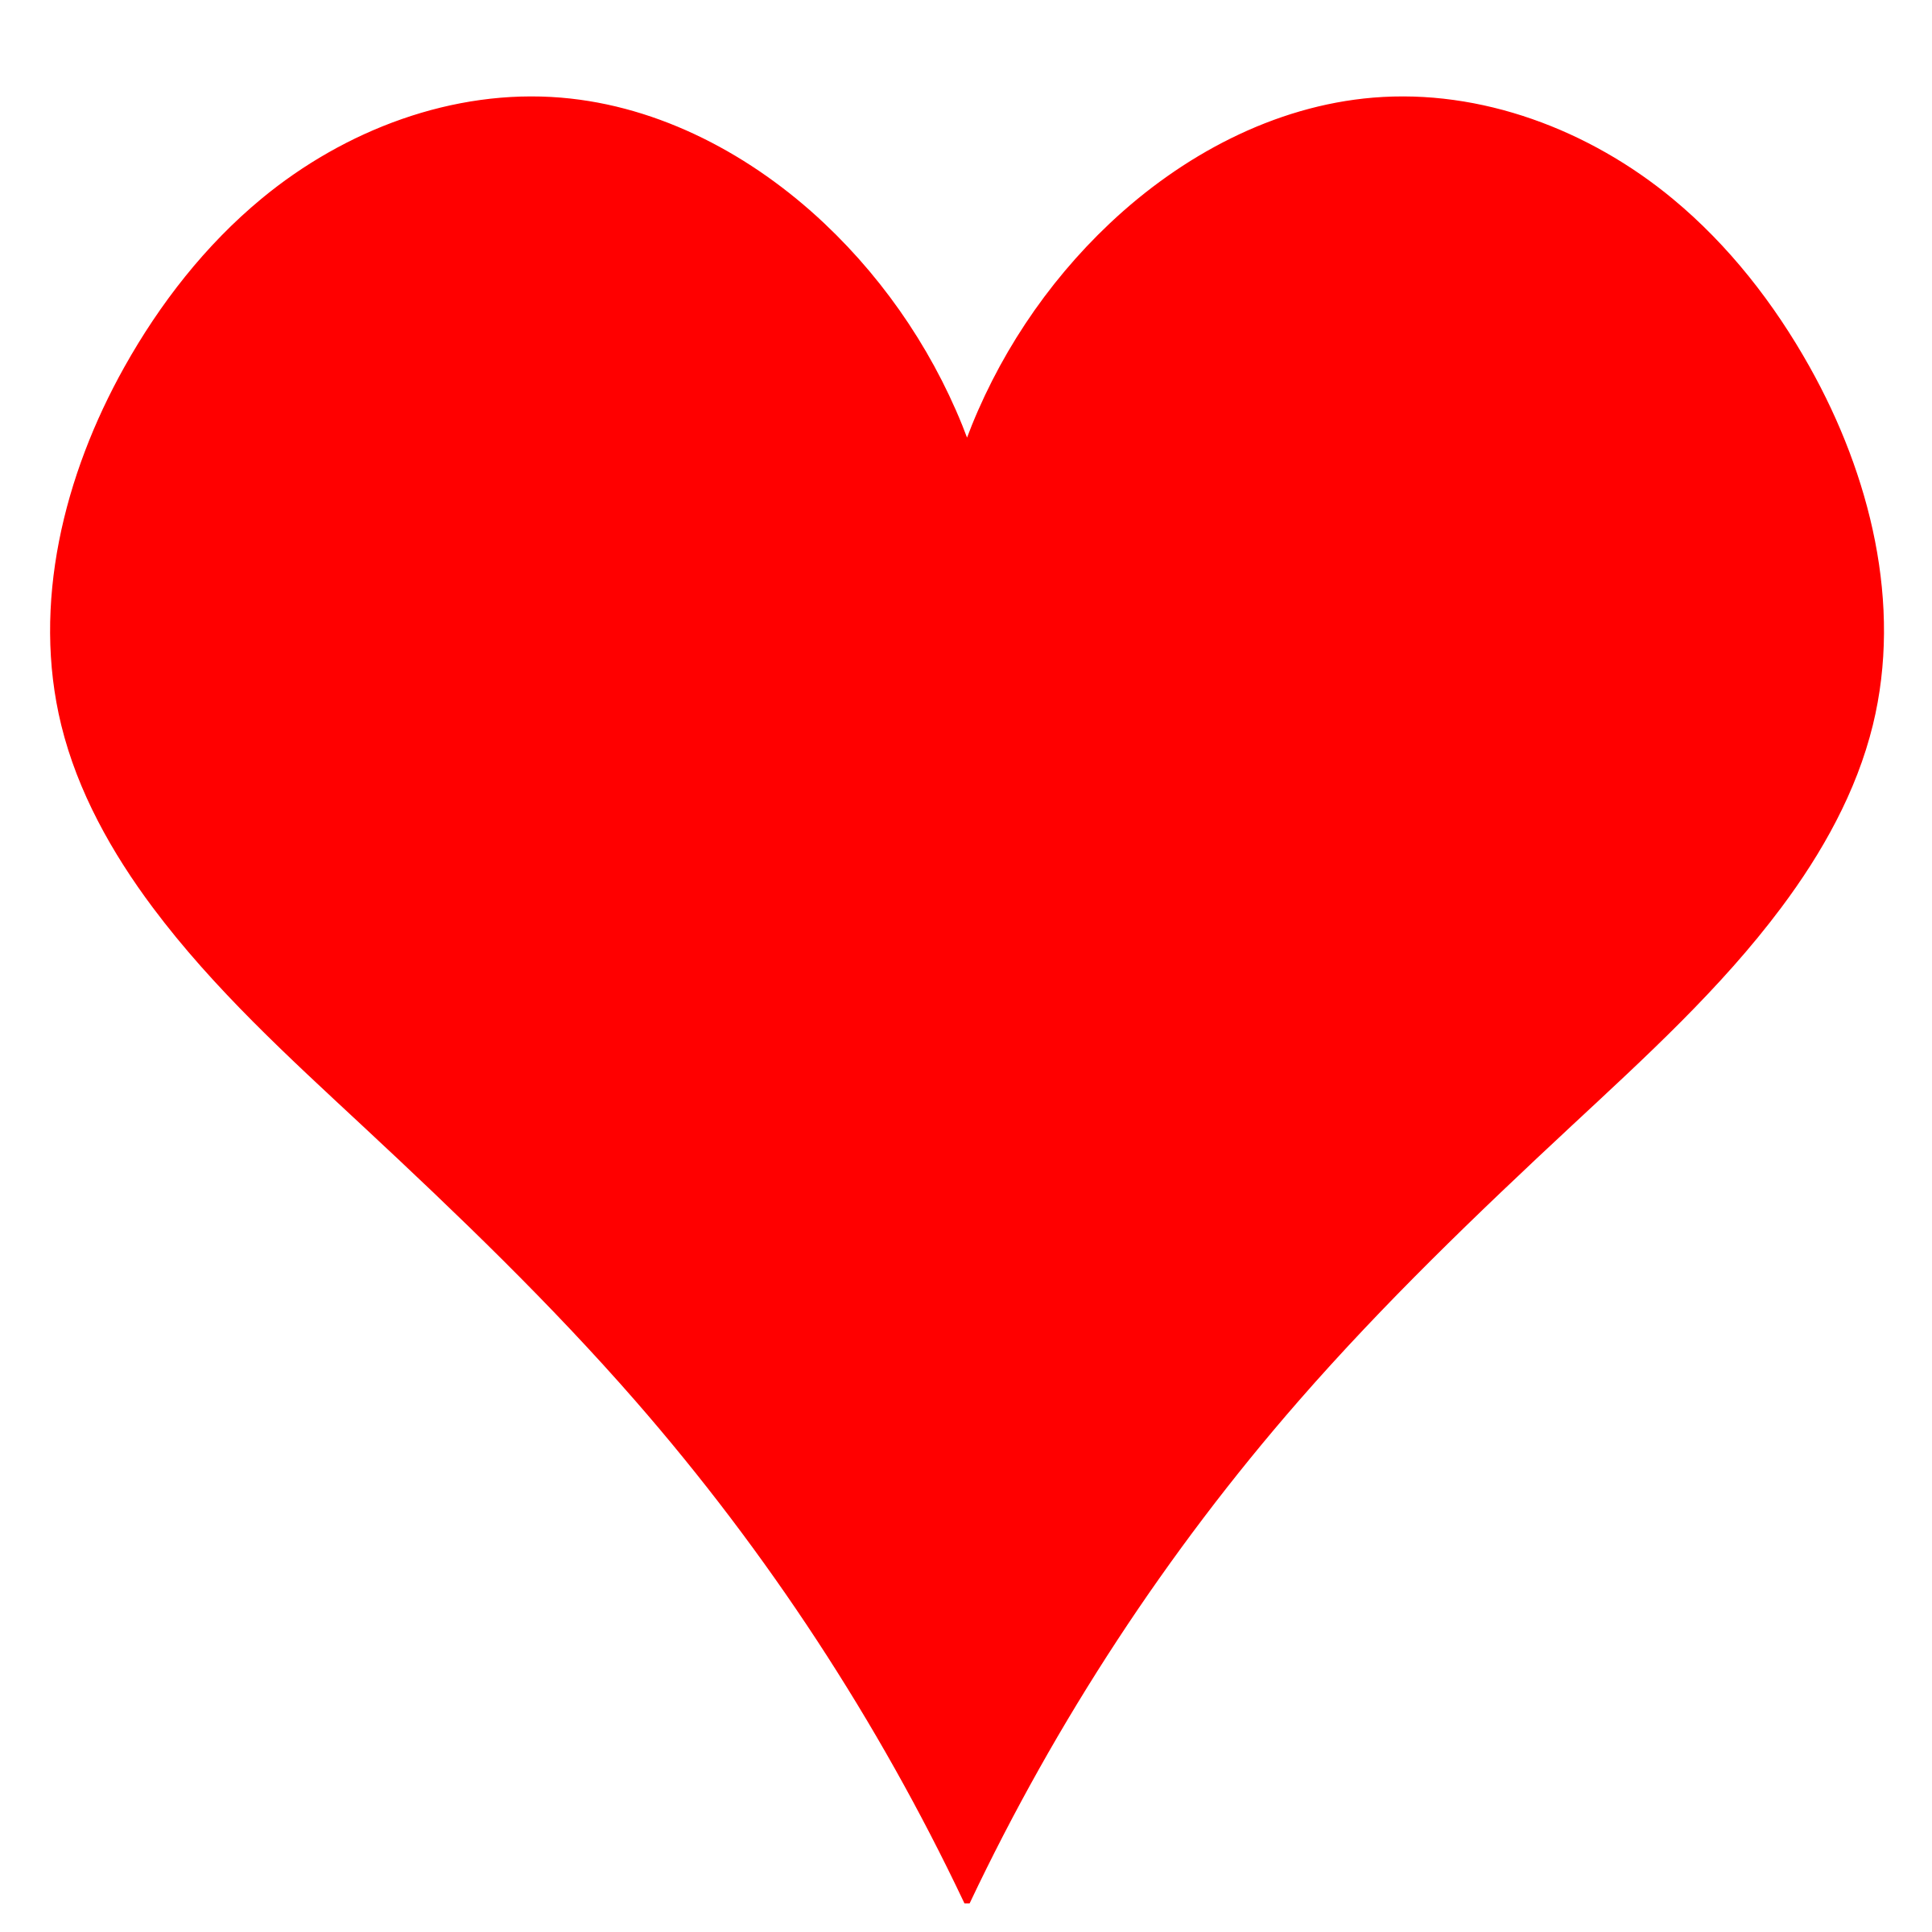 Red Heart Images - ClipArt Best